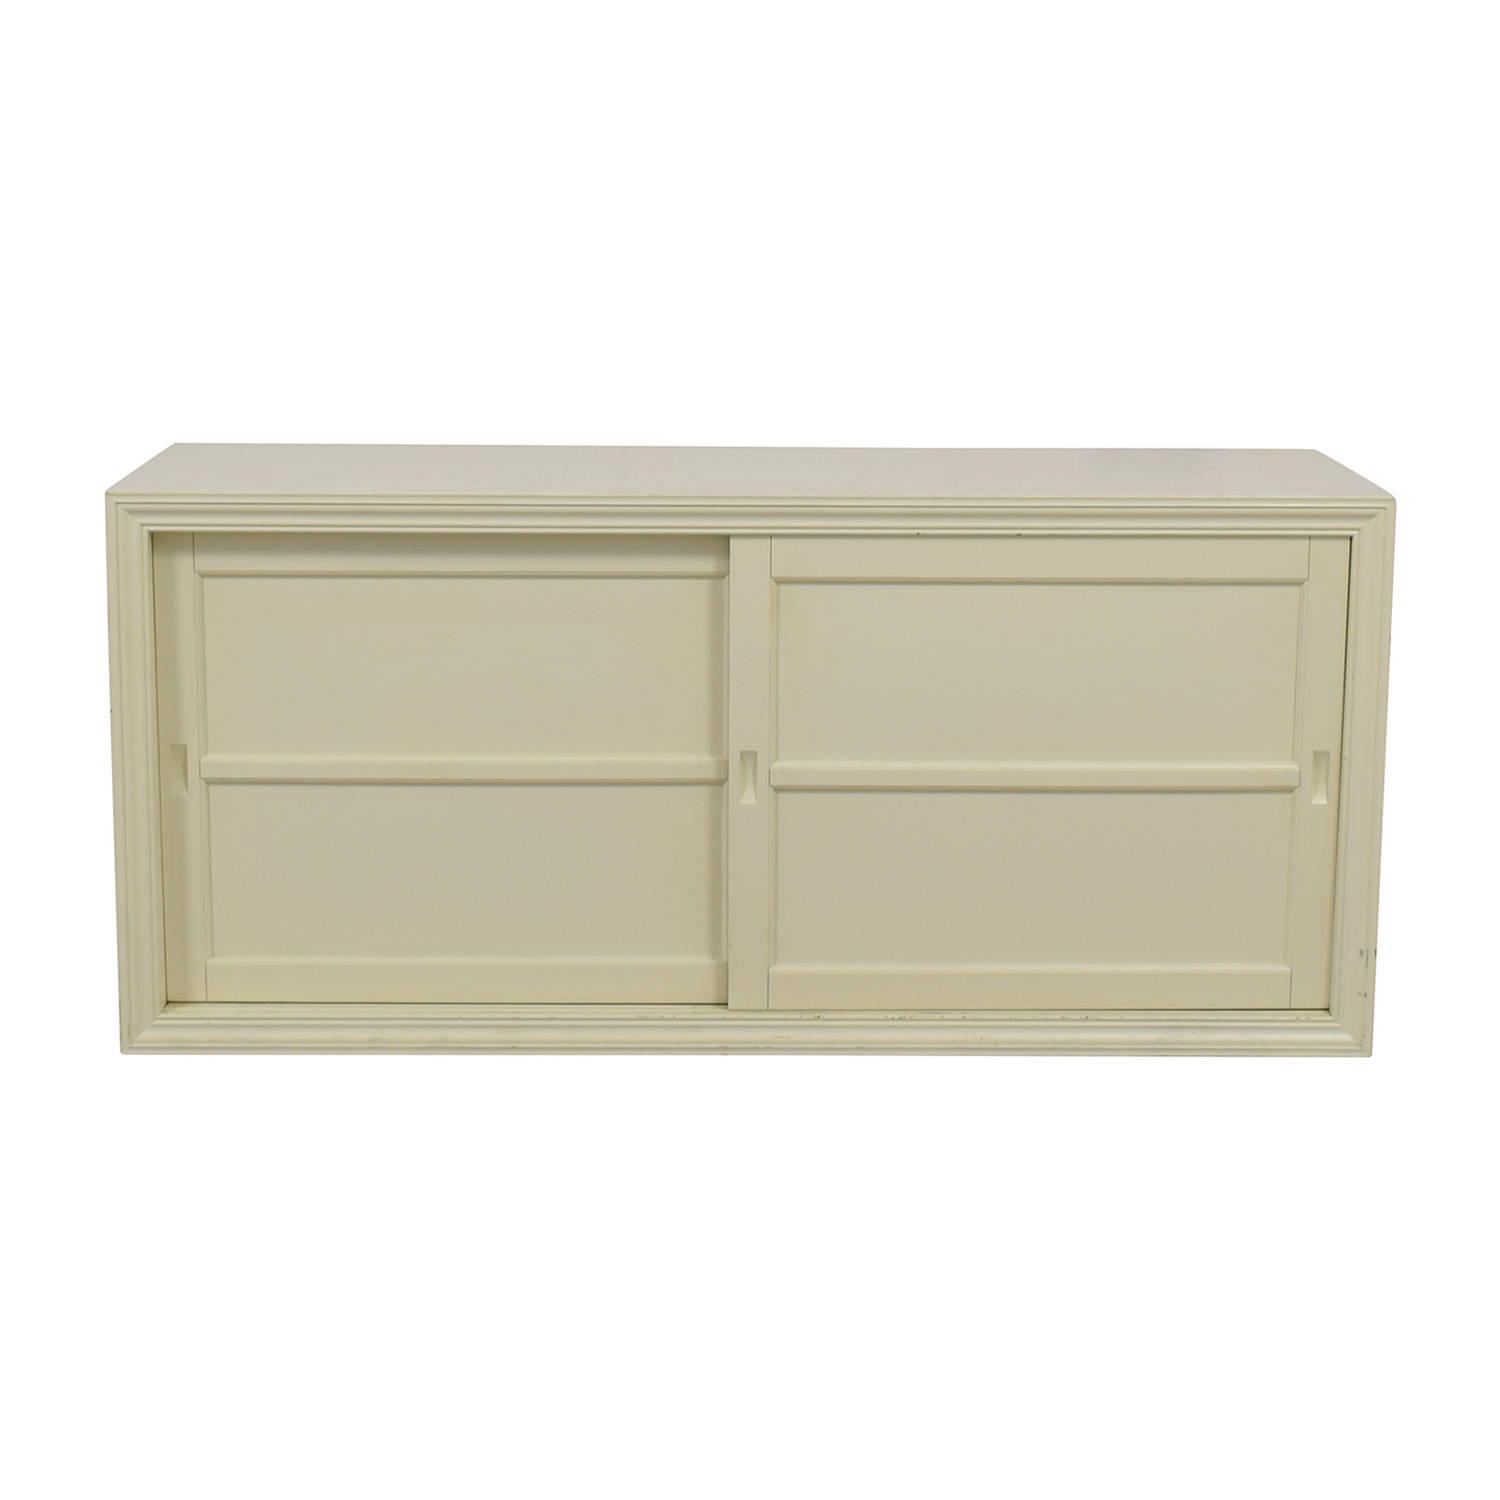 Buy Doors Online 81 Off Pottery Barn Pottery Barn Country White Sliding Doors Tv Stand Storage